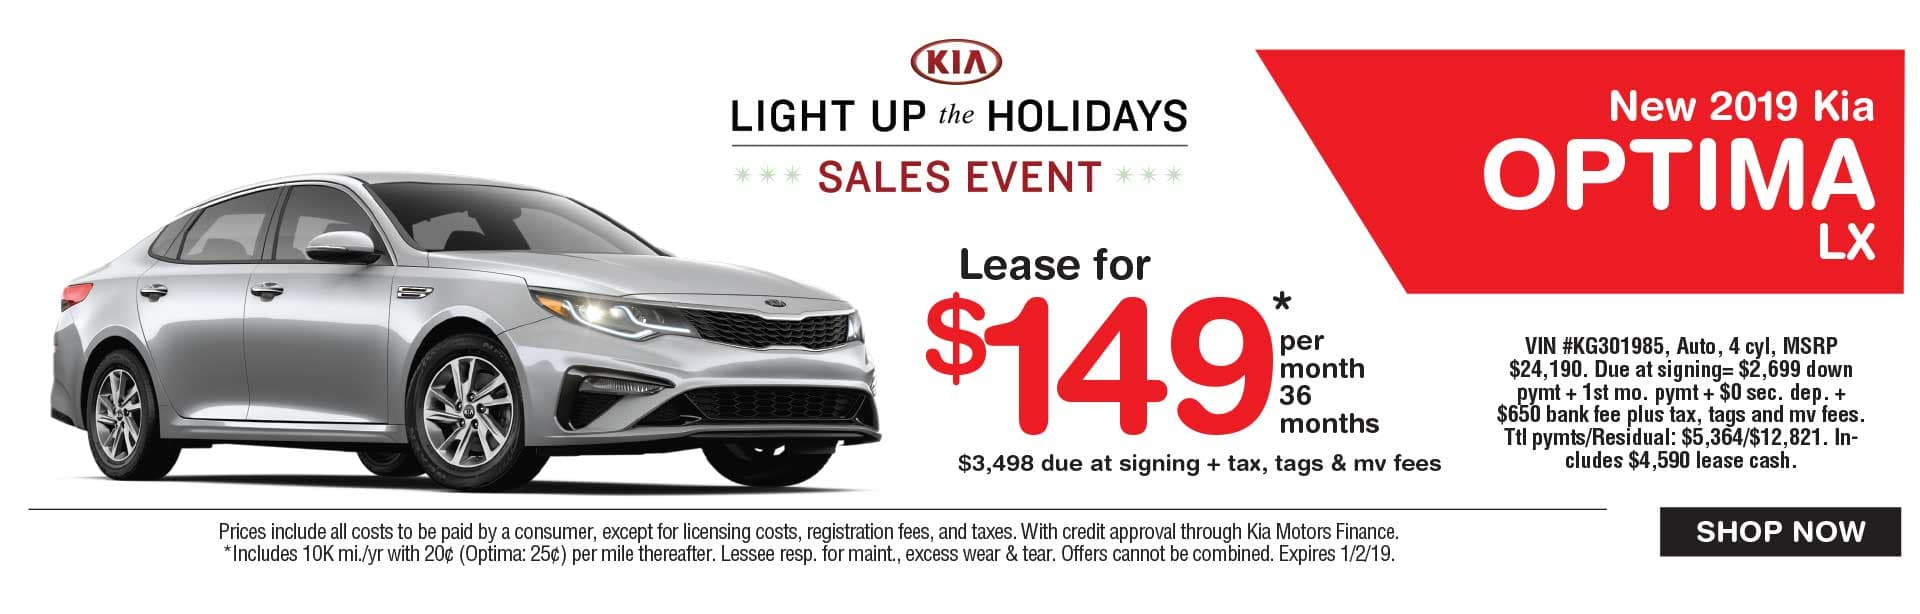 Kia Optima lease savings at Global Kia